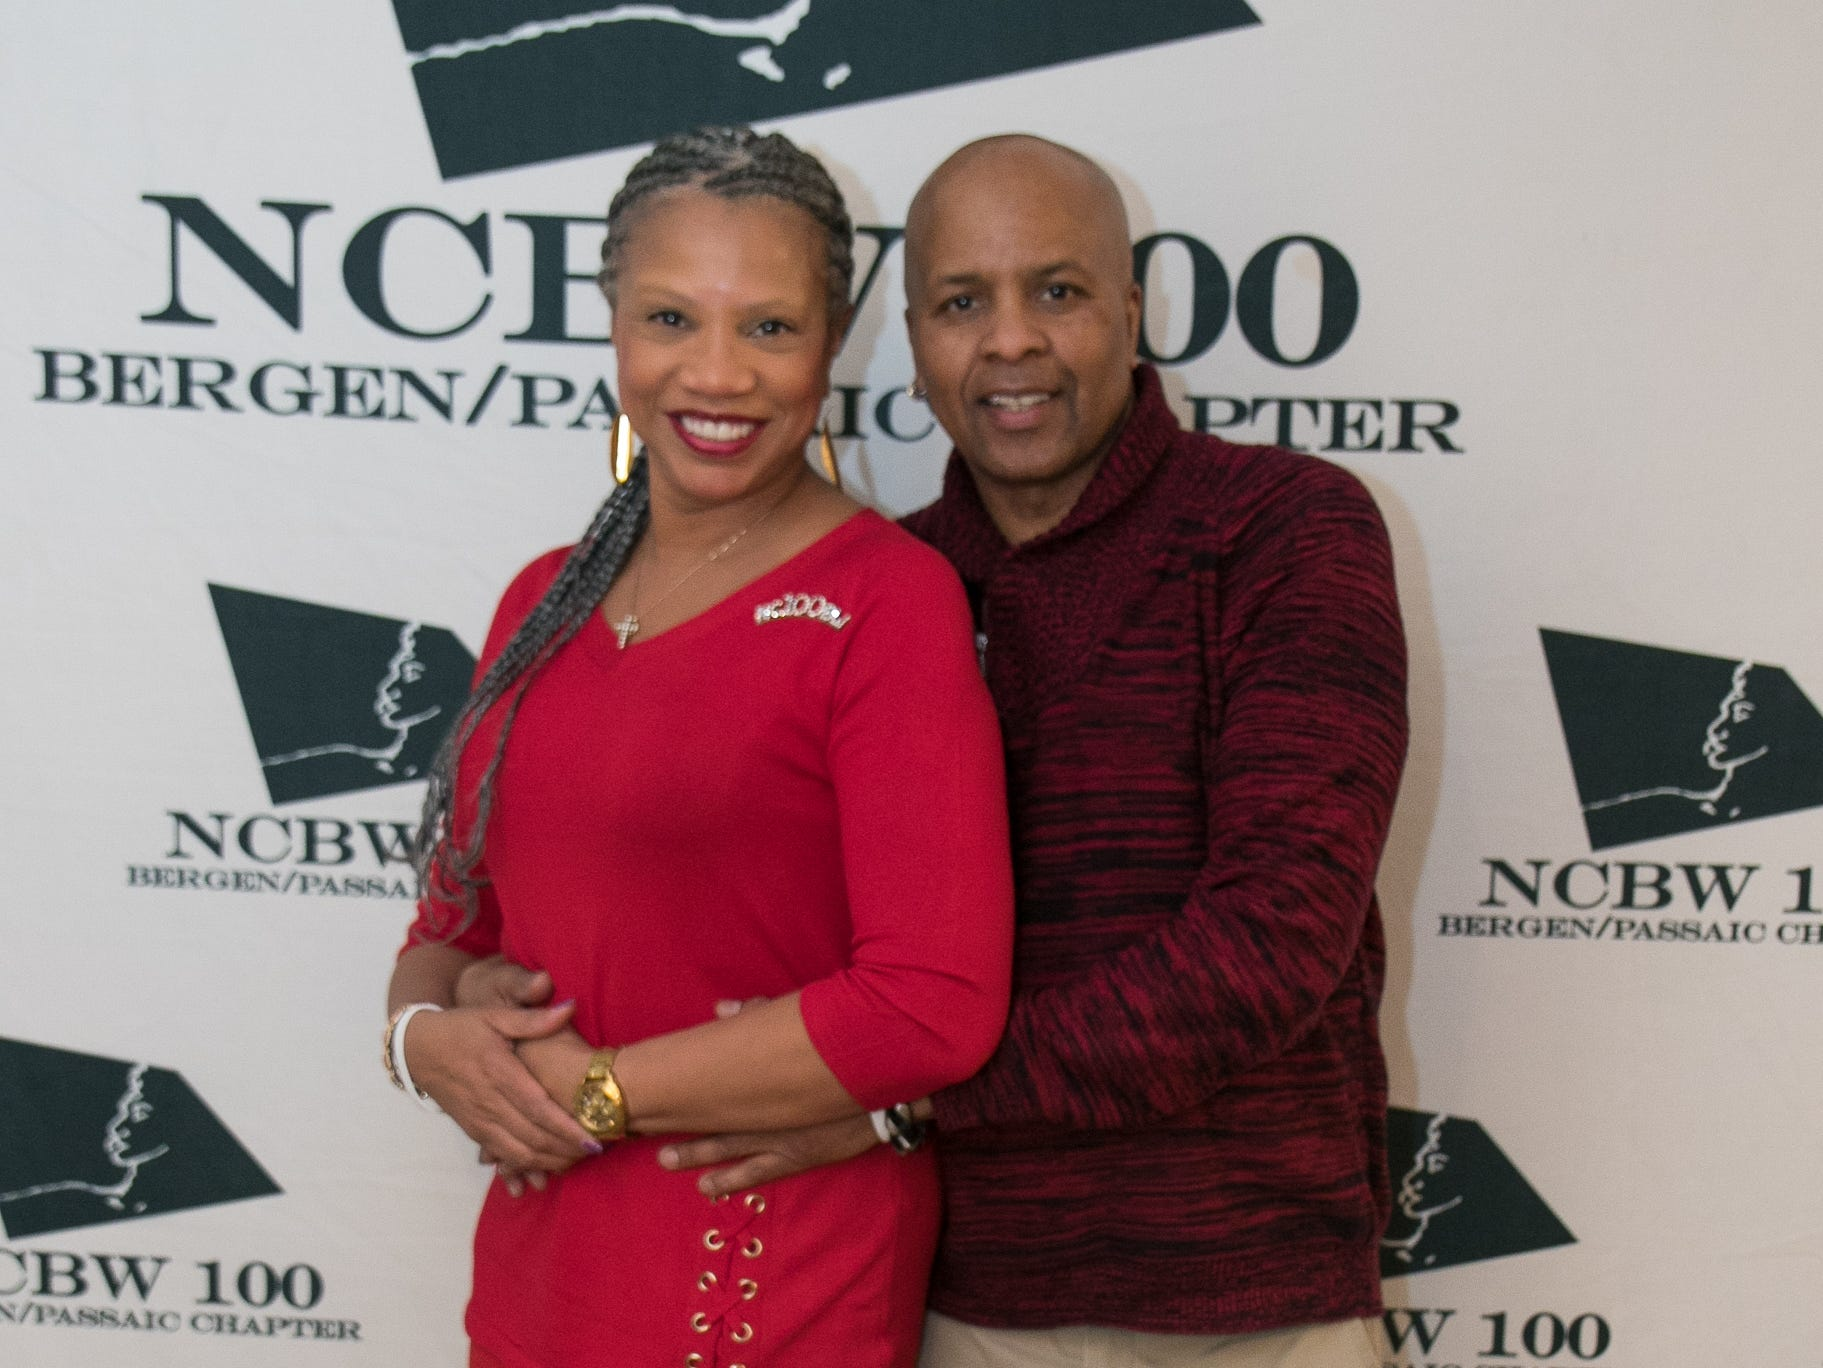 Yvonne Witter, Jeffrey Slater. The National Coalition of Black Women of Bergen and Passaic Counties held its annual Heart Healthy Go Red Event at The Hackensack Performing Arts Theater. 02/01/2019